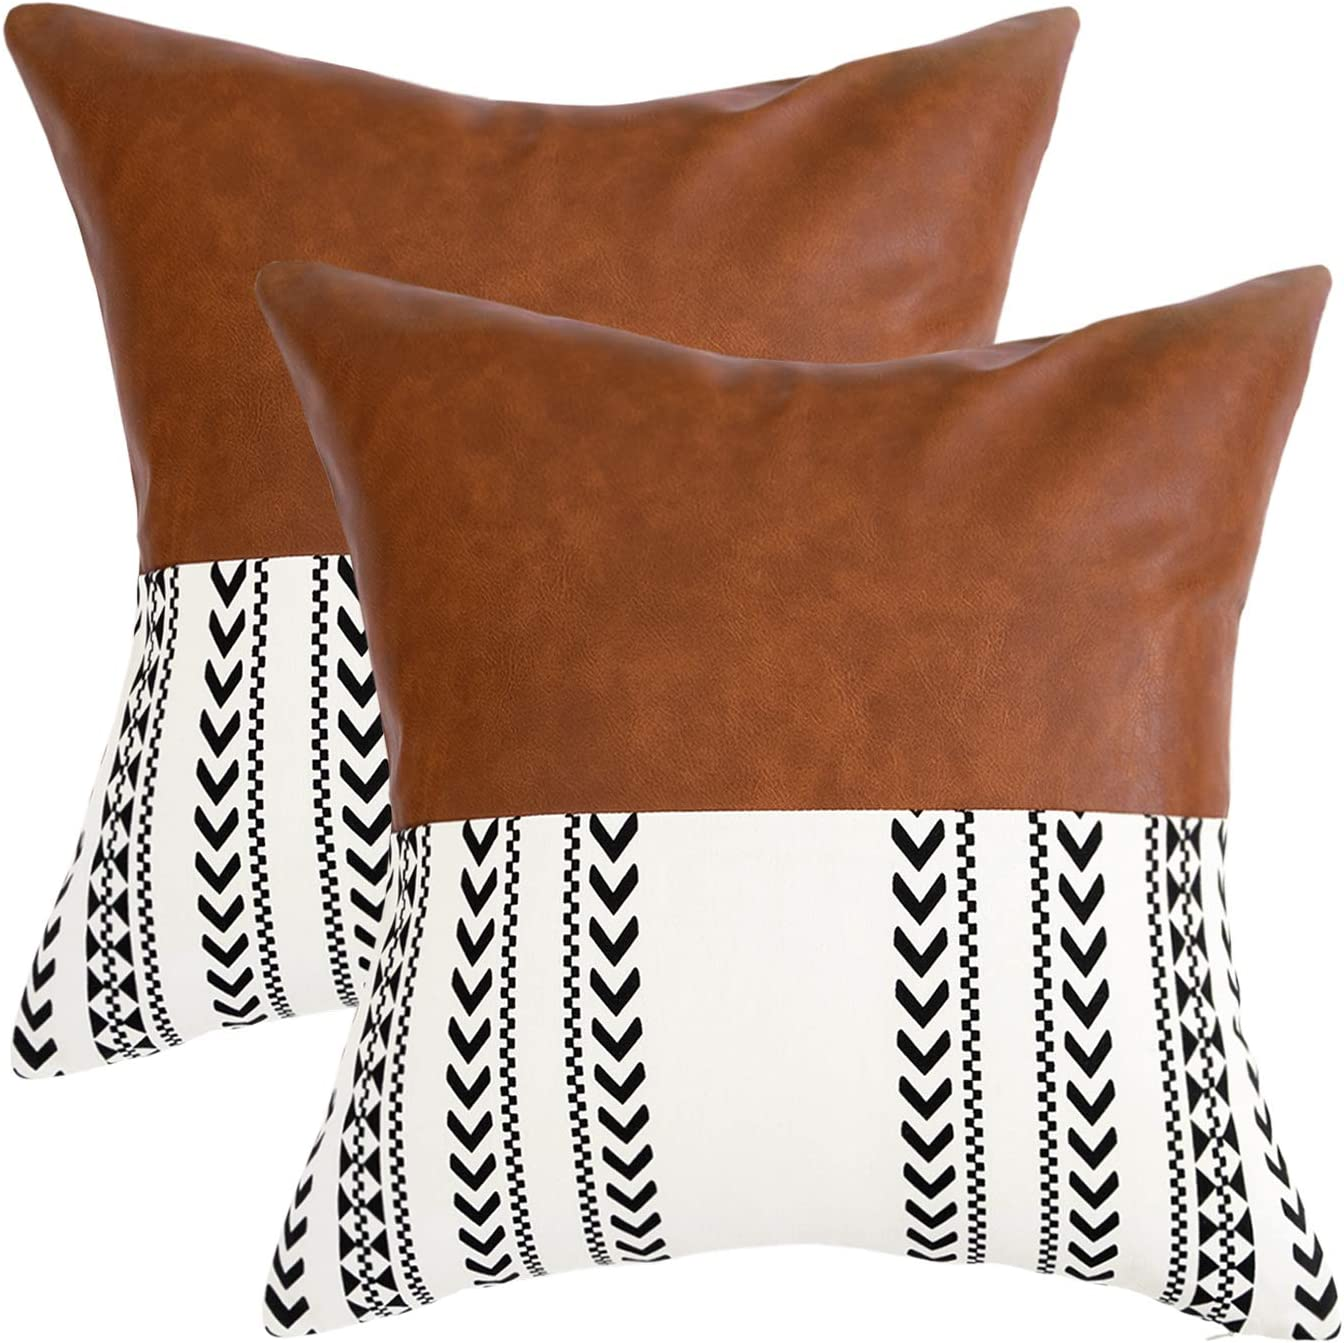 famibay Boho Couch Pillow Cover 18X18 Inch, Set of 2 Moroccan Natural Cotton and Faux Leather Fabric Modern Decor Cushion Cases